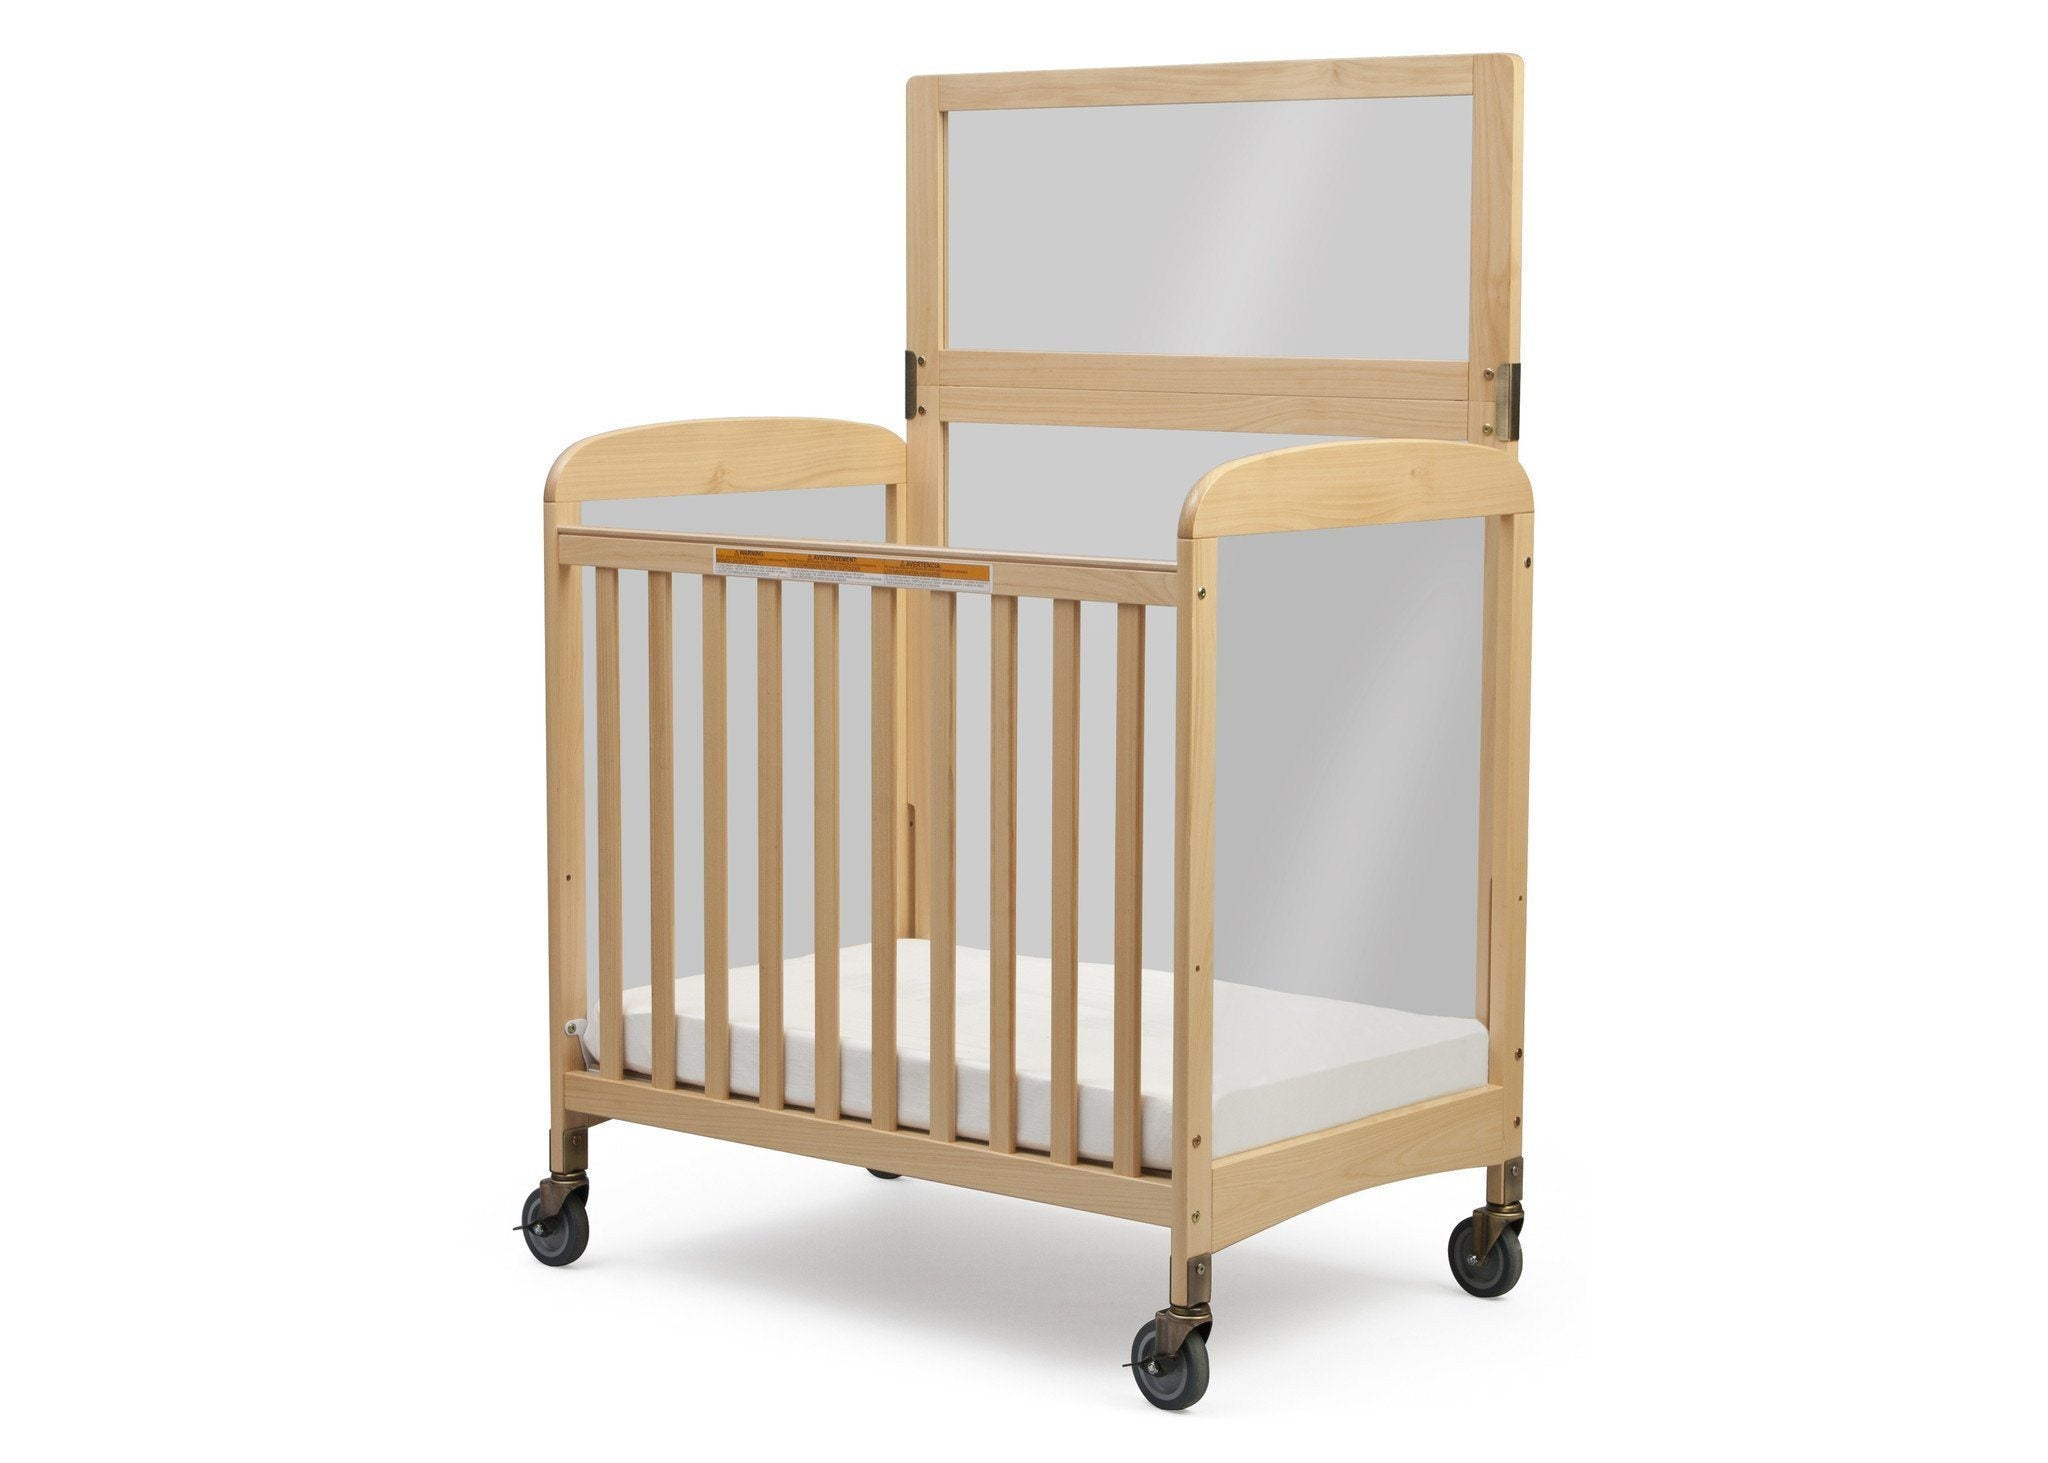 Simmons Kids Natural (260) Sweet Dreamer with Safe Barrier, Left Side View a2a